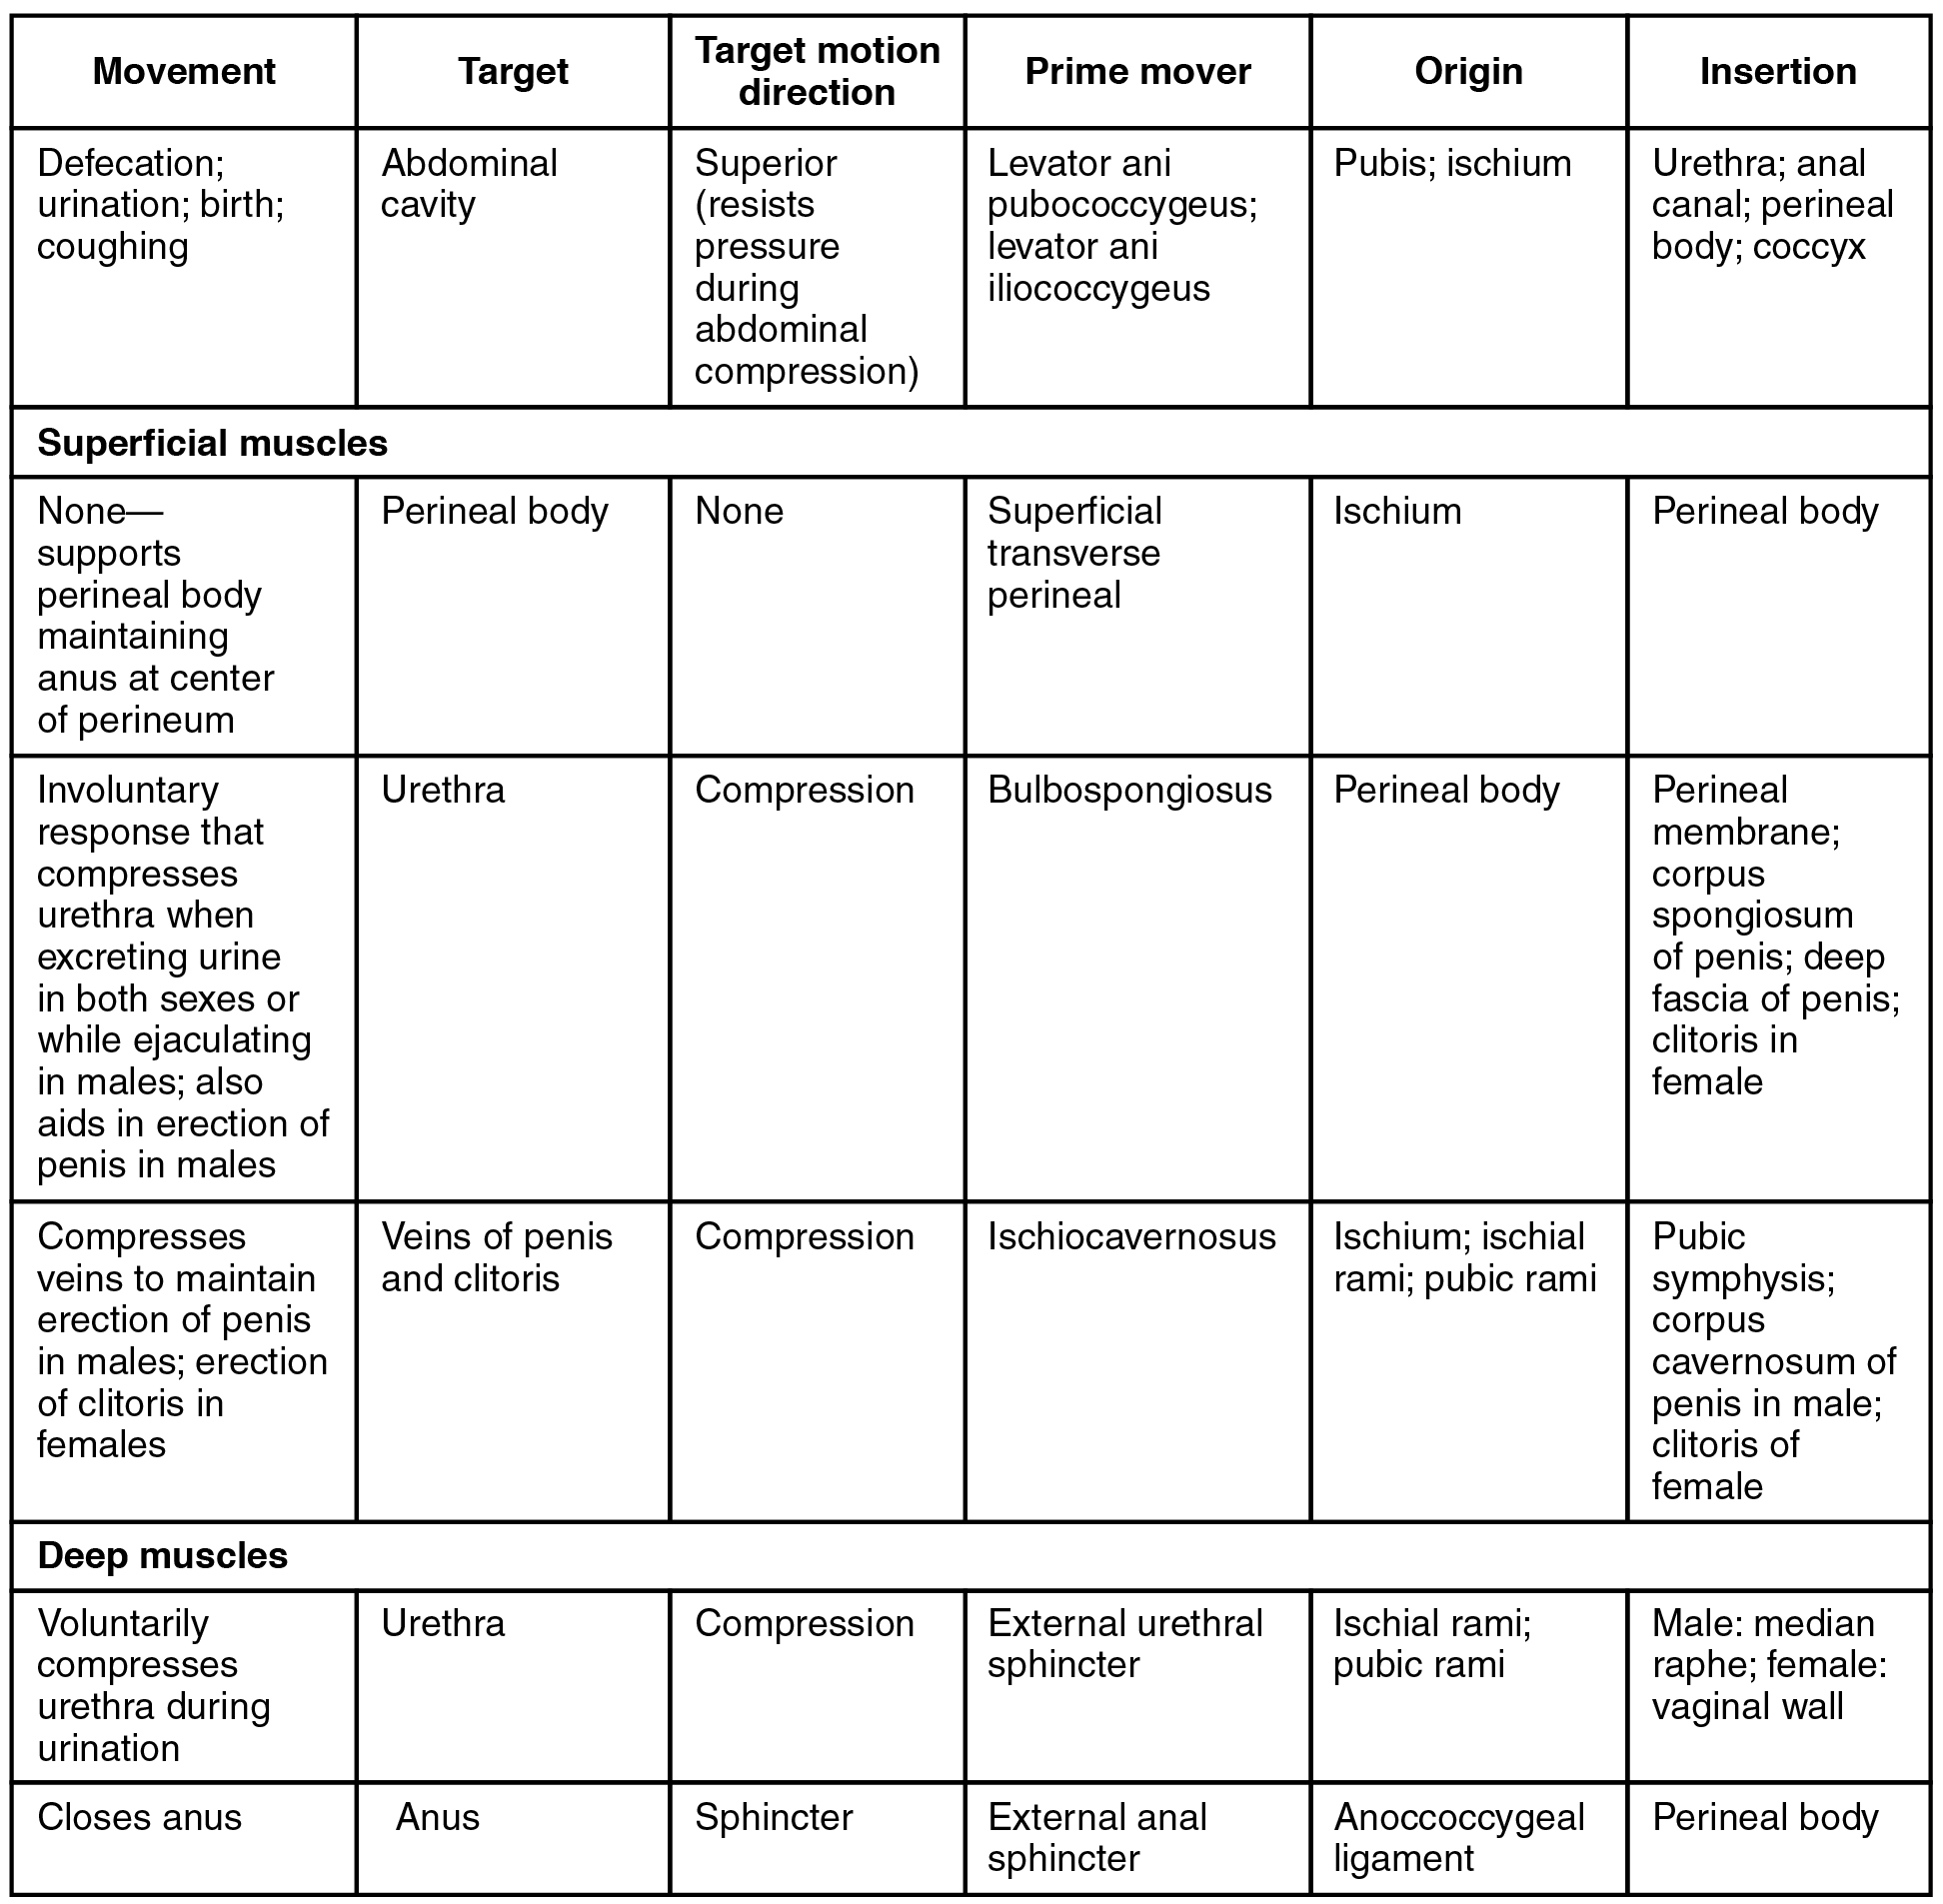 This table describes the muscles of the perineum that are common to men and women. The levator ani pubococcygeus and levator ani iliococcygeus control movements during defaction, urination, coughing, and giving birth. They originate in the pubis and ischium. The superficial transverse perineal supports the perineal body maintaining the anus at the center of the perineum. It originates in the ischium. The bulbospongiosus is a superficial muscle that causes an involuntary response that compresses the urethra when excreting urine in both sexes or while ejaculating in males; it also aids in erection of the penis in males. It originates in the perineal body. The ischiocavernosus is a superficial muscle that compresses veins to maintain erection of the penis in males and erection of the clitoris in females. It originates in the ischium, ischial rami, and pubic rami. The external uretral sphincter is a deep muscle that voluntarily compresses the urethra during urination. It originates in the ischial rami and pubic rami. The external anal sphincter is a deep muscle that closes the anus. It originates in the anoccoccygeal ligament.